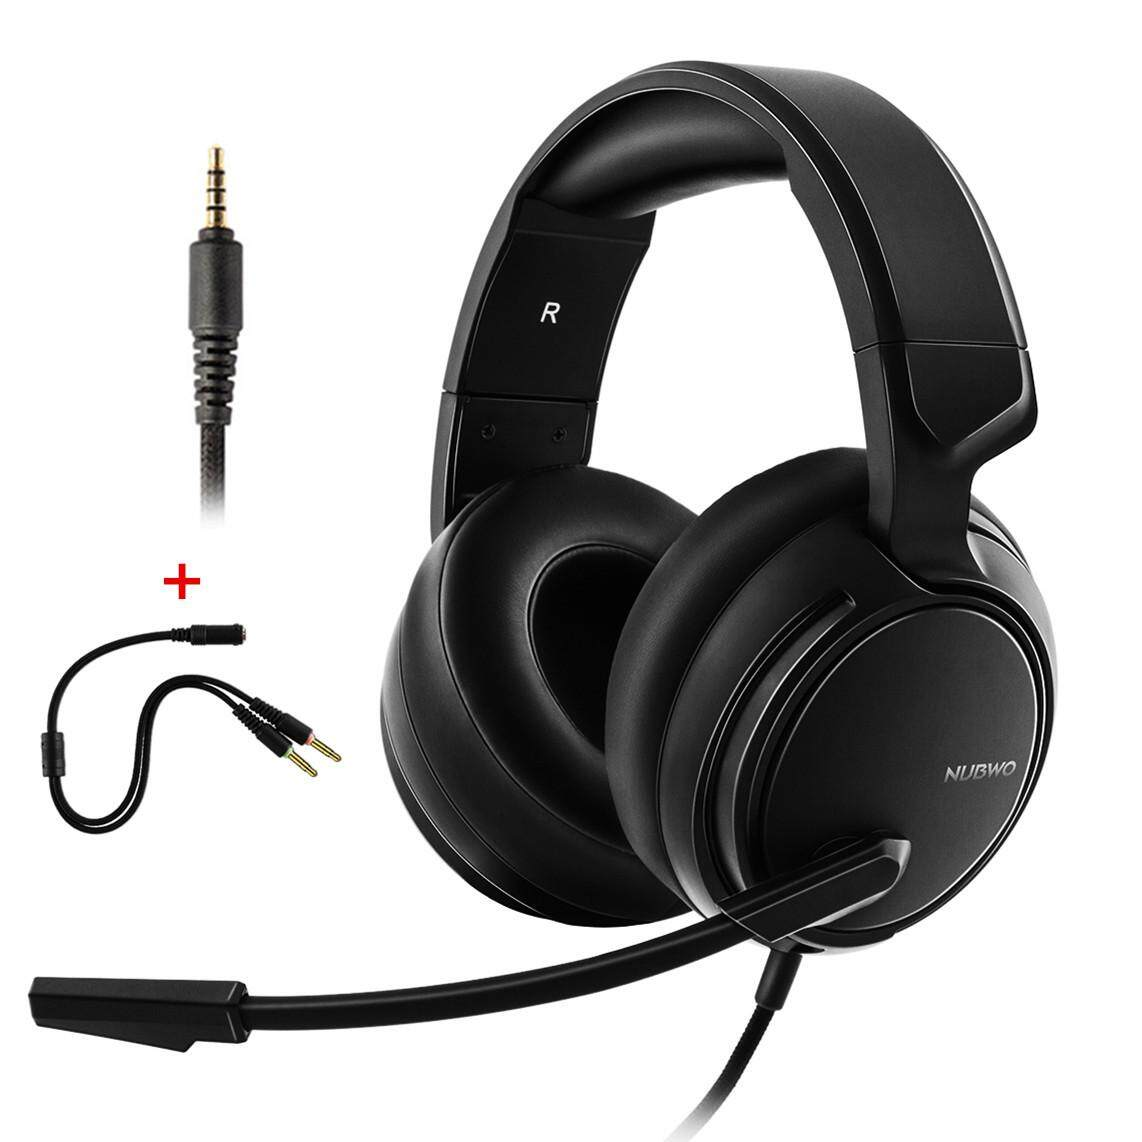 Nubwo N12 3.5mm Ps4 Gaming Headset With Microphone For New Xbox One Laptop Phone Computer Over-Ear Game Headphones Bass Earphones Black By Blingbling Retail Stores.